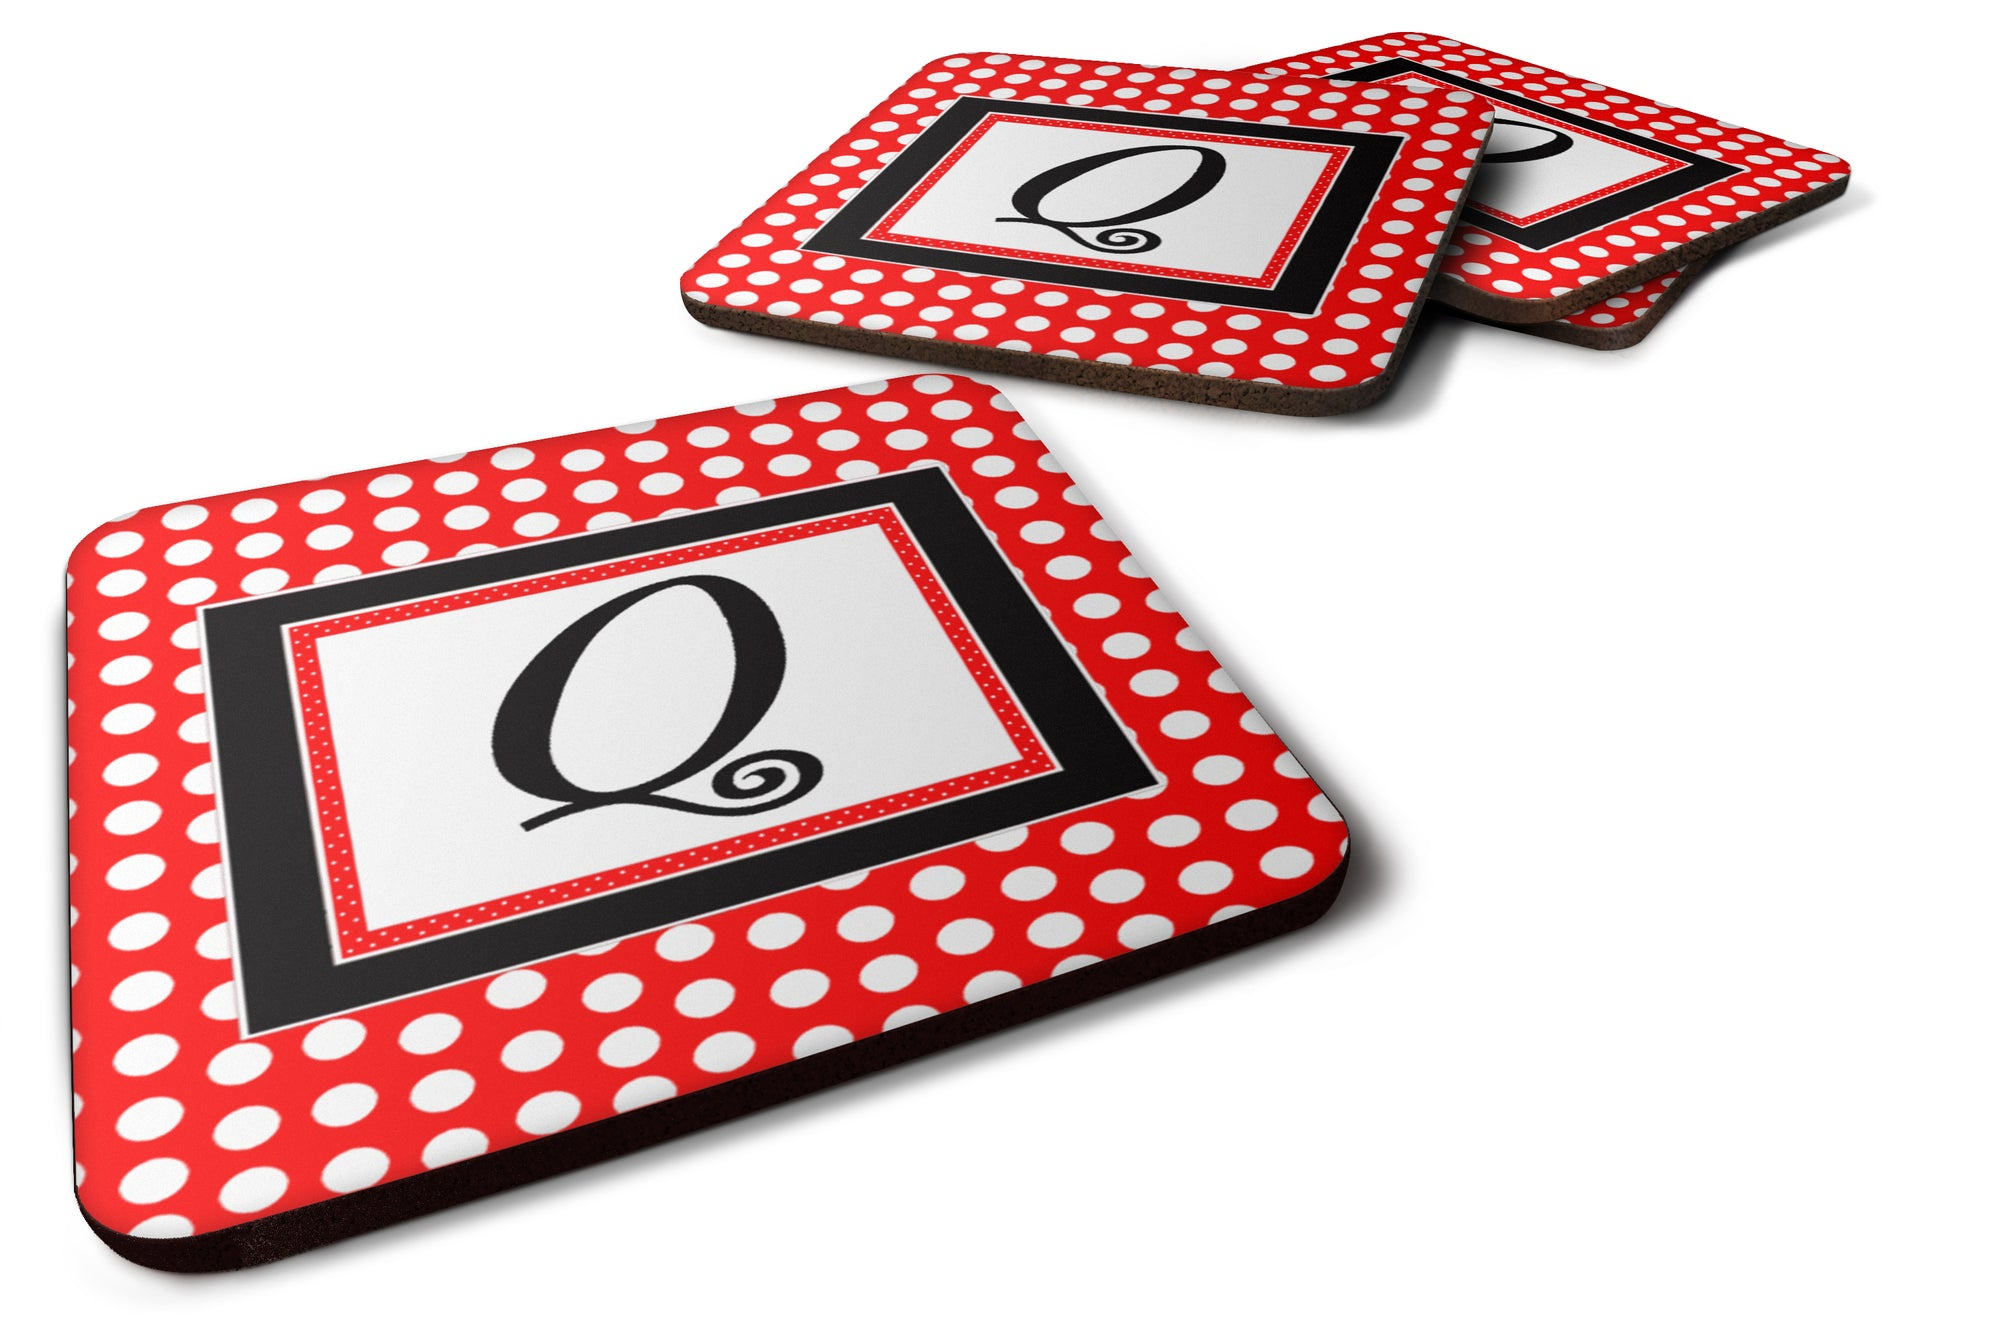 Set of 4 Monogram - Red Black Polka Dots Foam Coasters Initial Letter Q by Caroline's Treasures